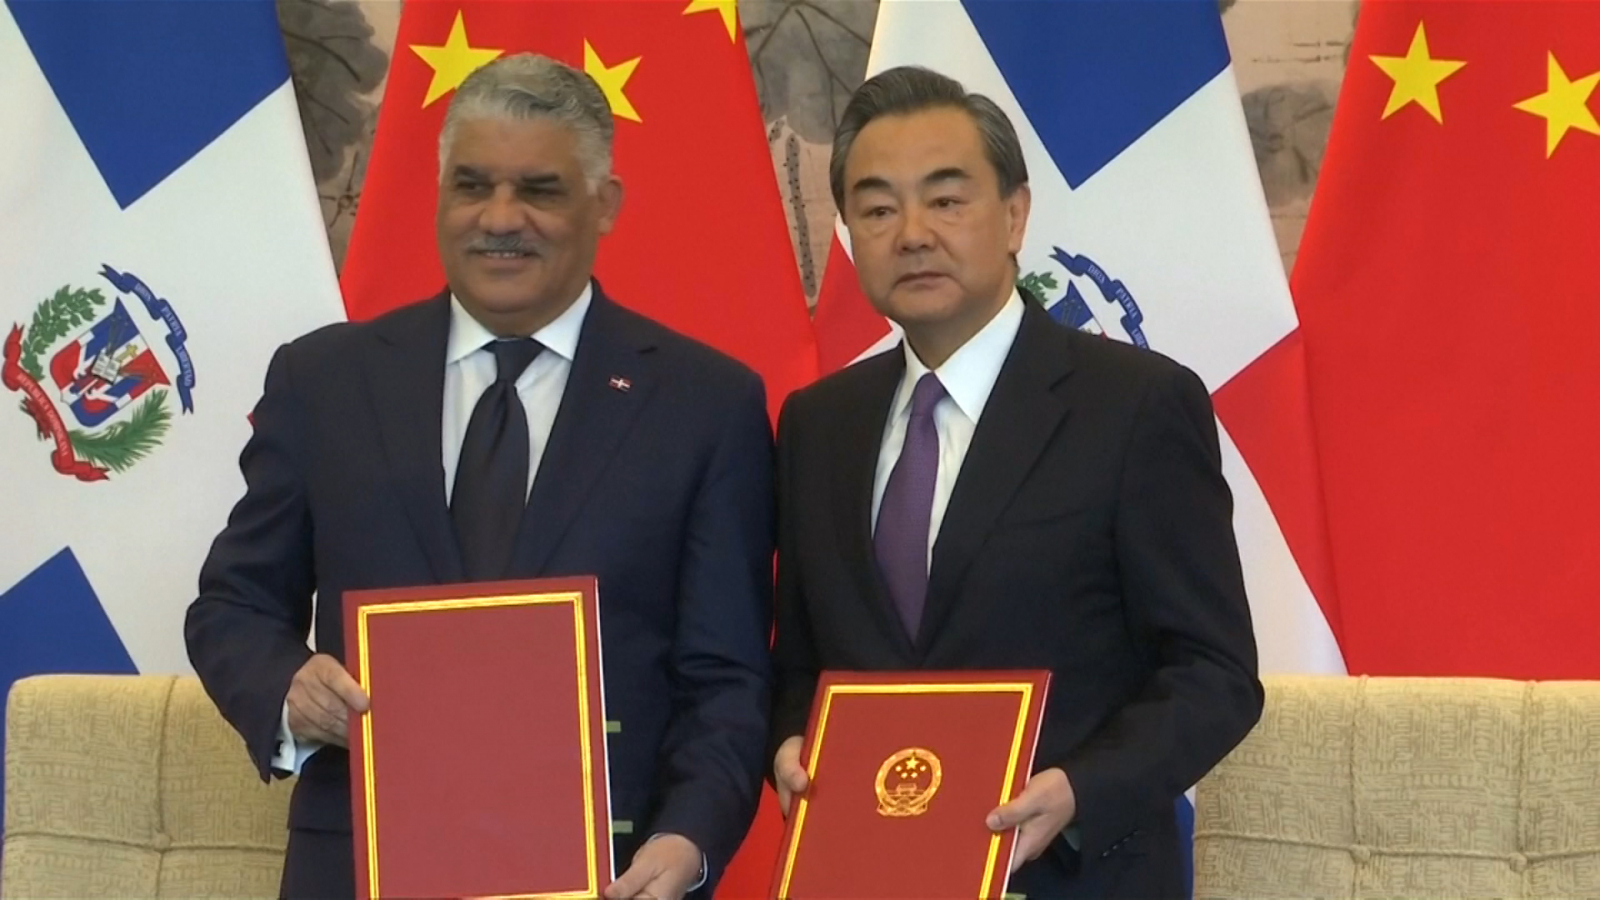 dominican-republic-cuts-ties-with-taiwan-in-favor-of-china